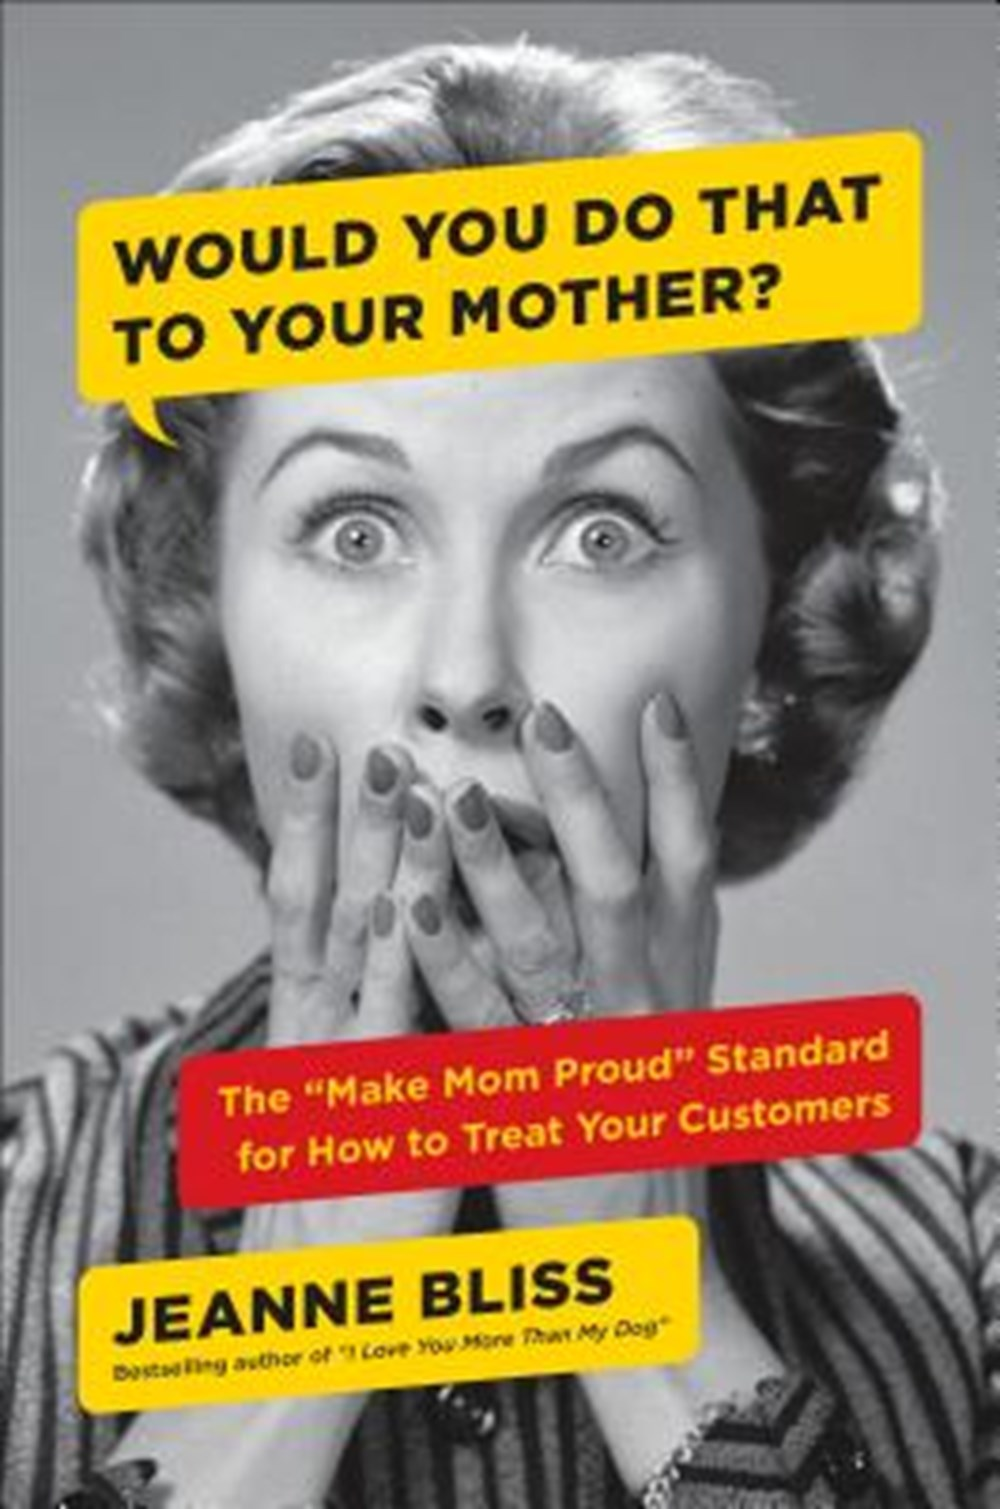 "Would You Do That to Your Mother? The ""make Mom Proud"" Standard for How to Treat Your Customers"